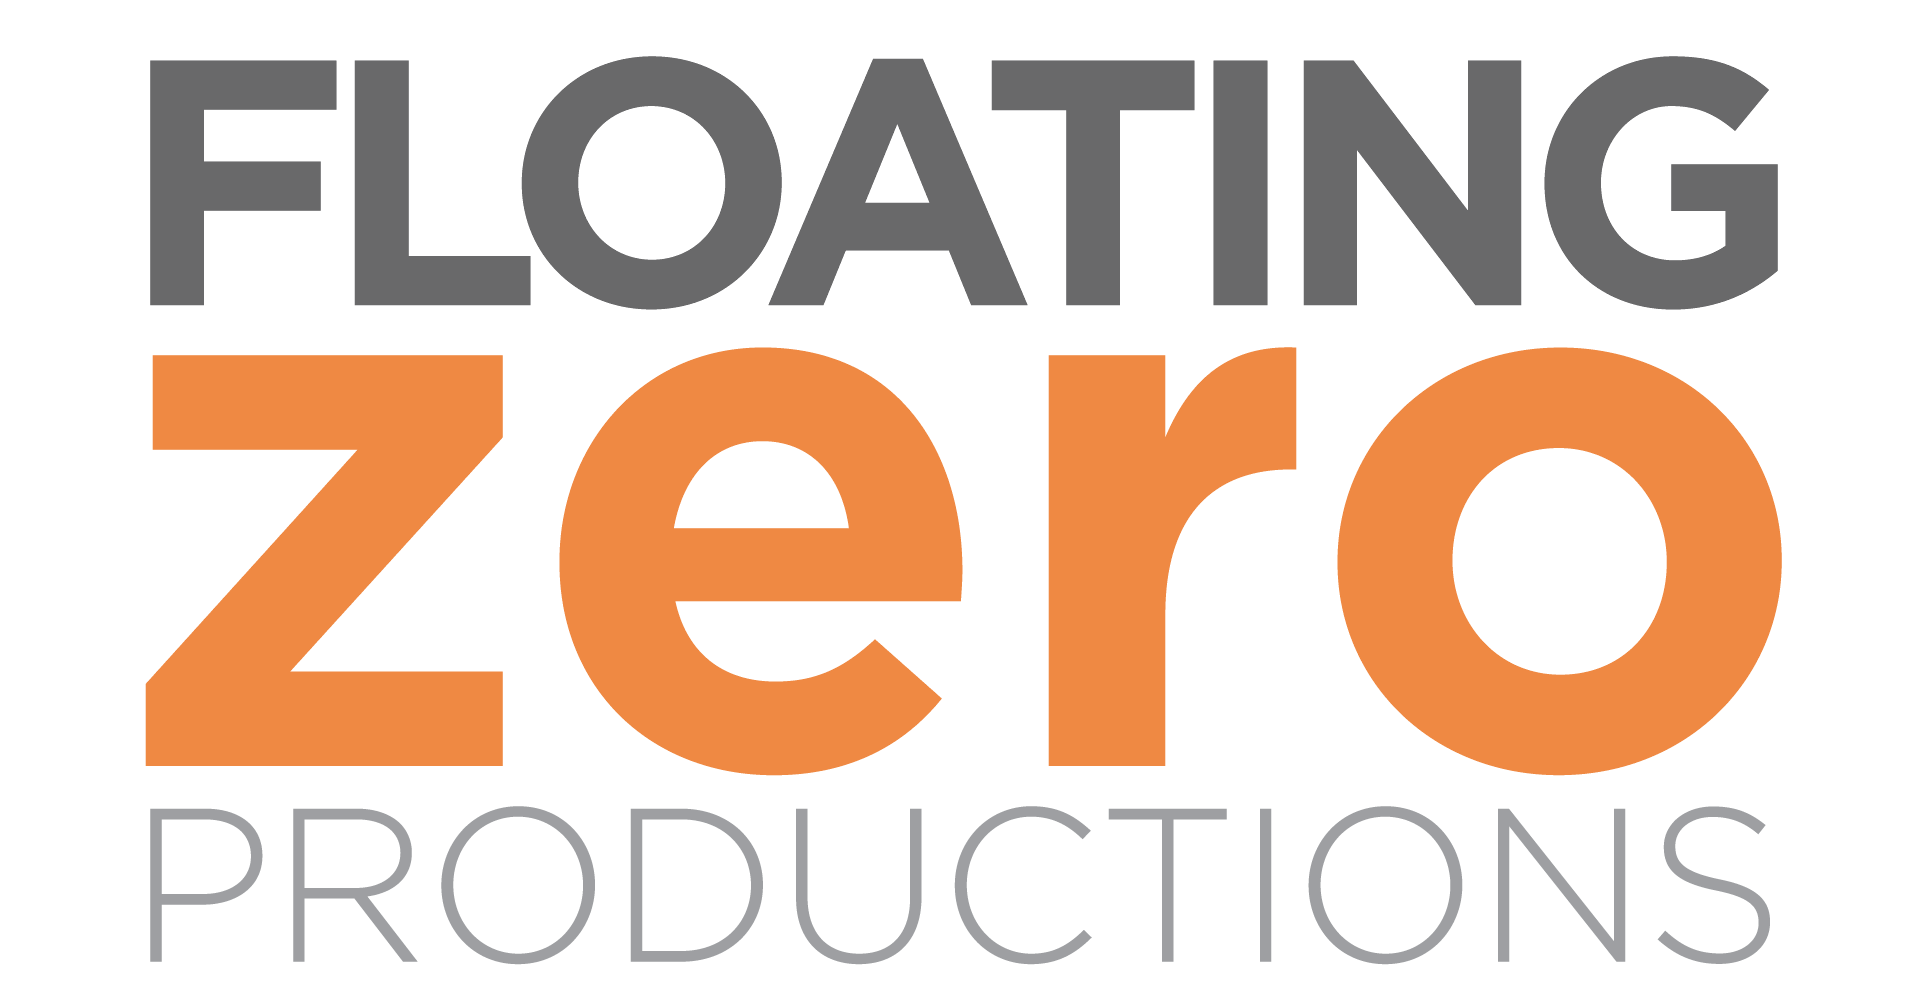 Floating Zero Productions